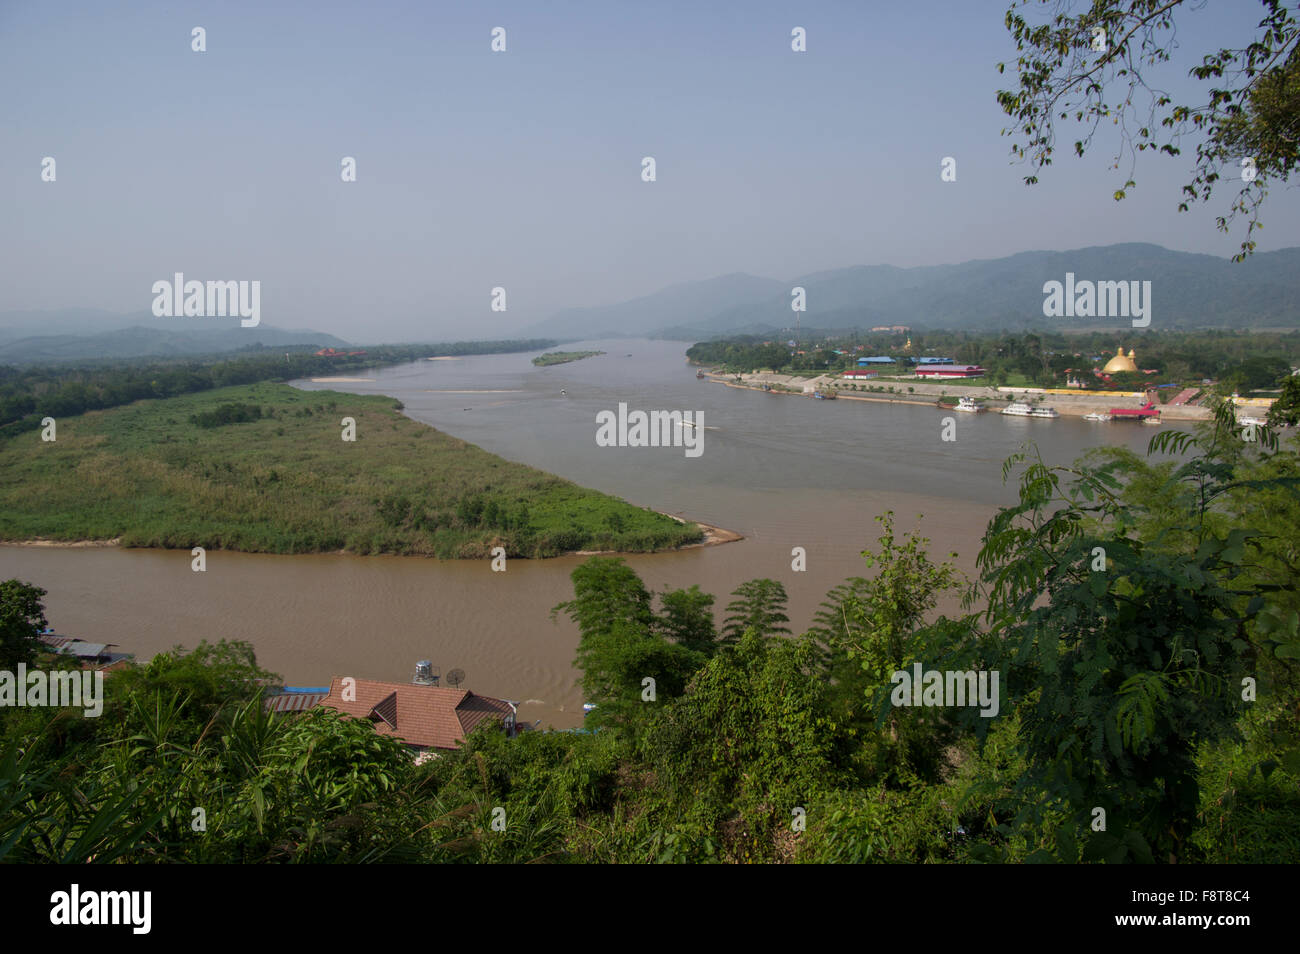 Mekong River at the Golden Triangle between Myanmar, Thailand and Laos Southeast Asia Stock Photo